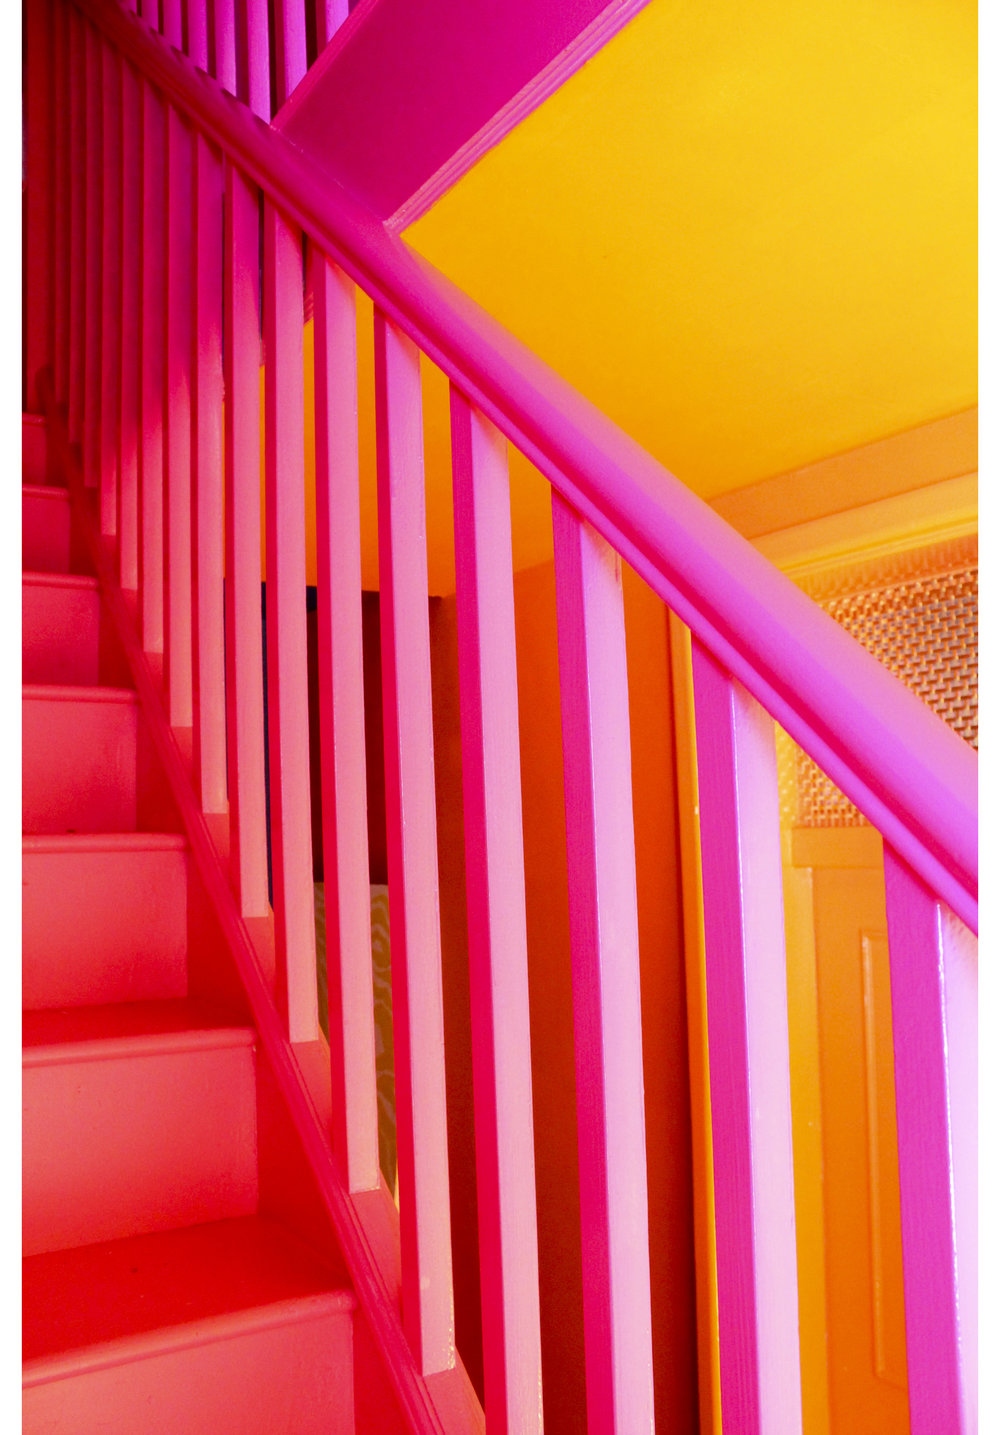 MLH Pink Bannisters Orange Ceiling.jpg